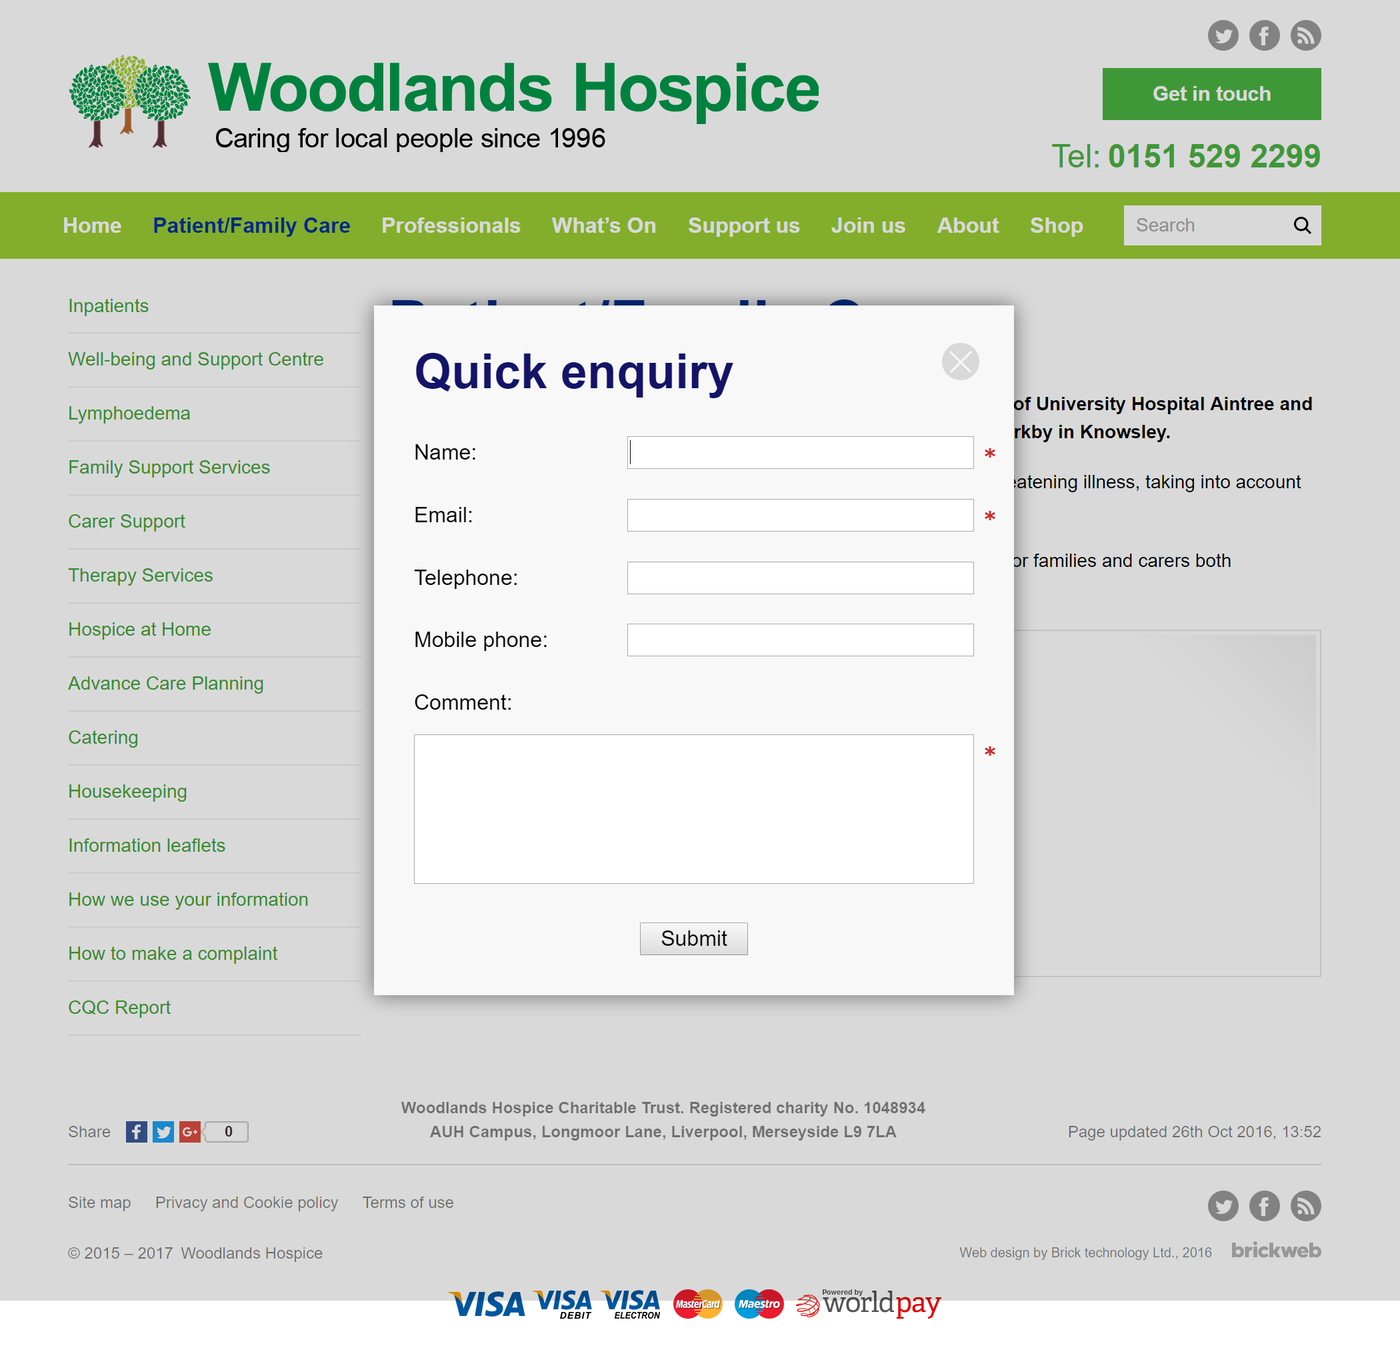 Woodlands Hospice Quick Enquiry